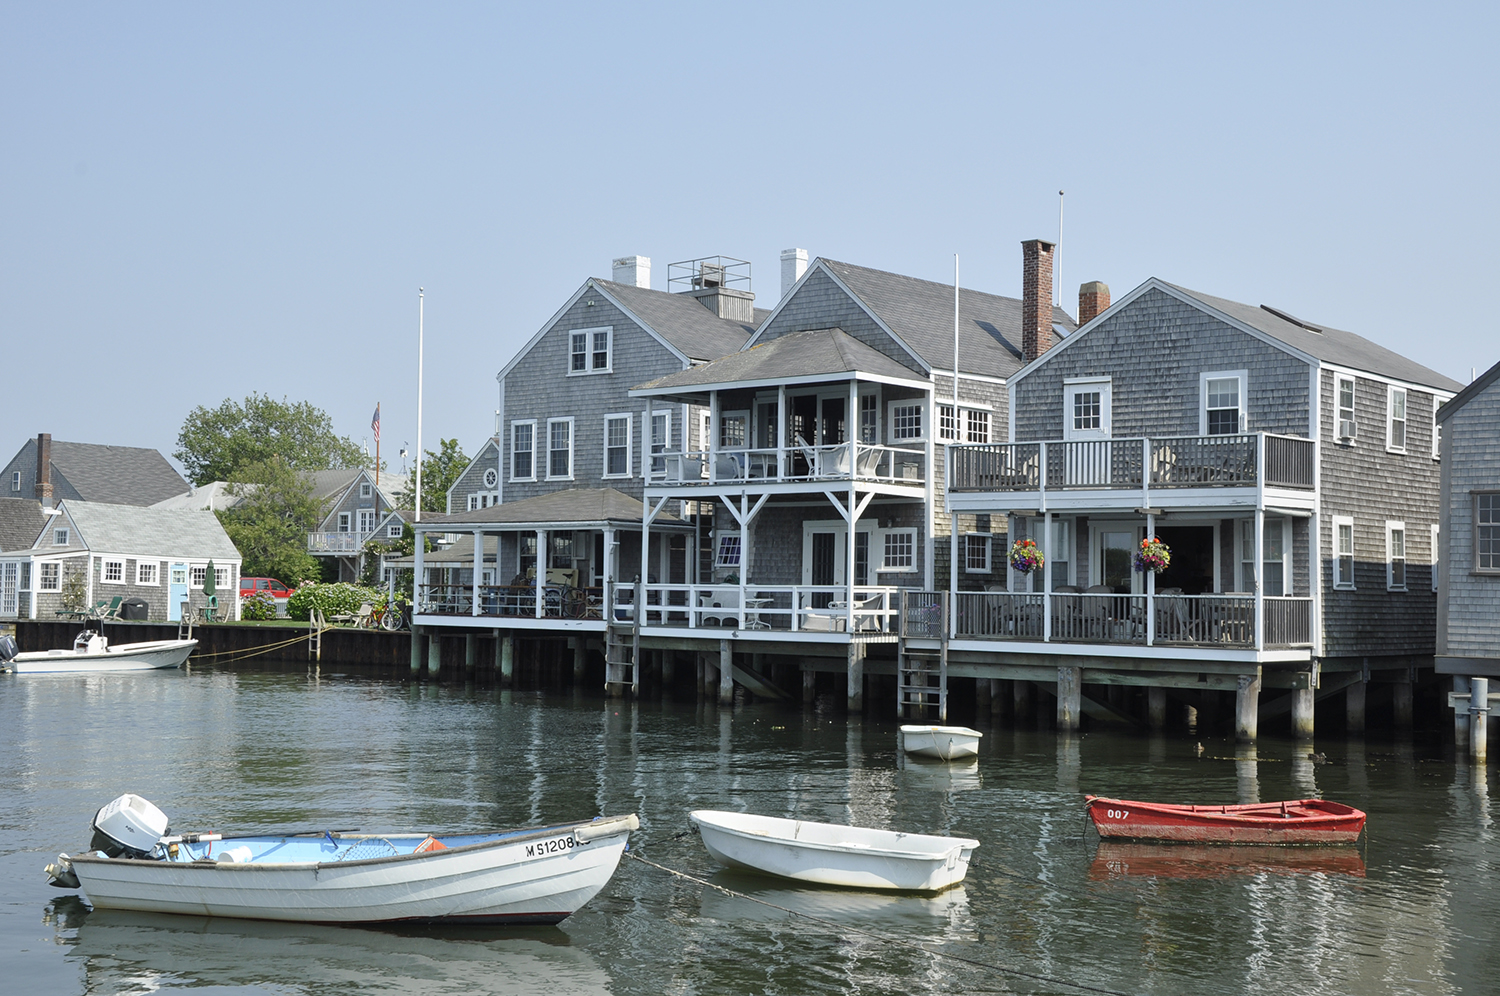 THE 30 MOST CHARMING BEACH TOWNS IN THE USA